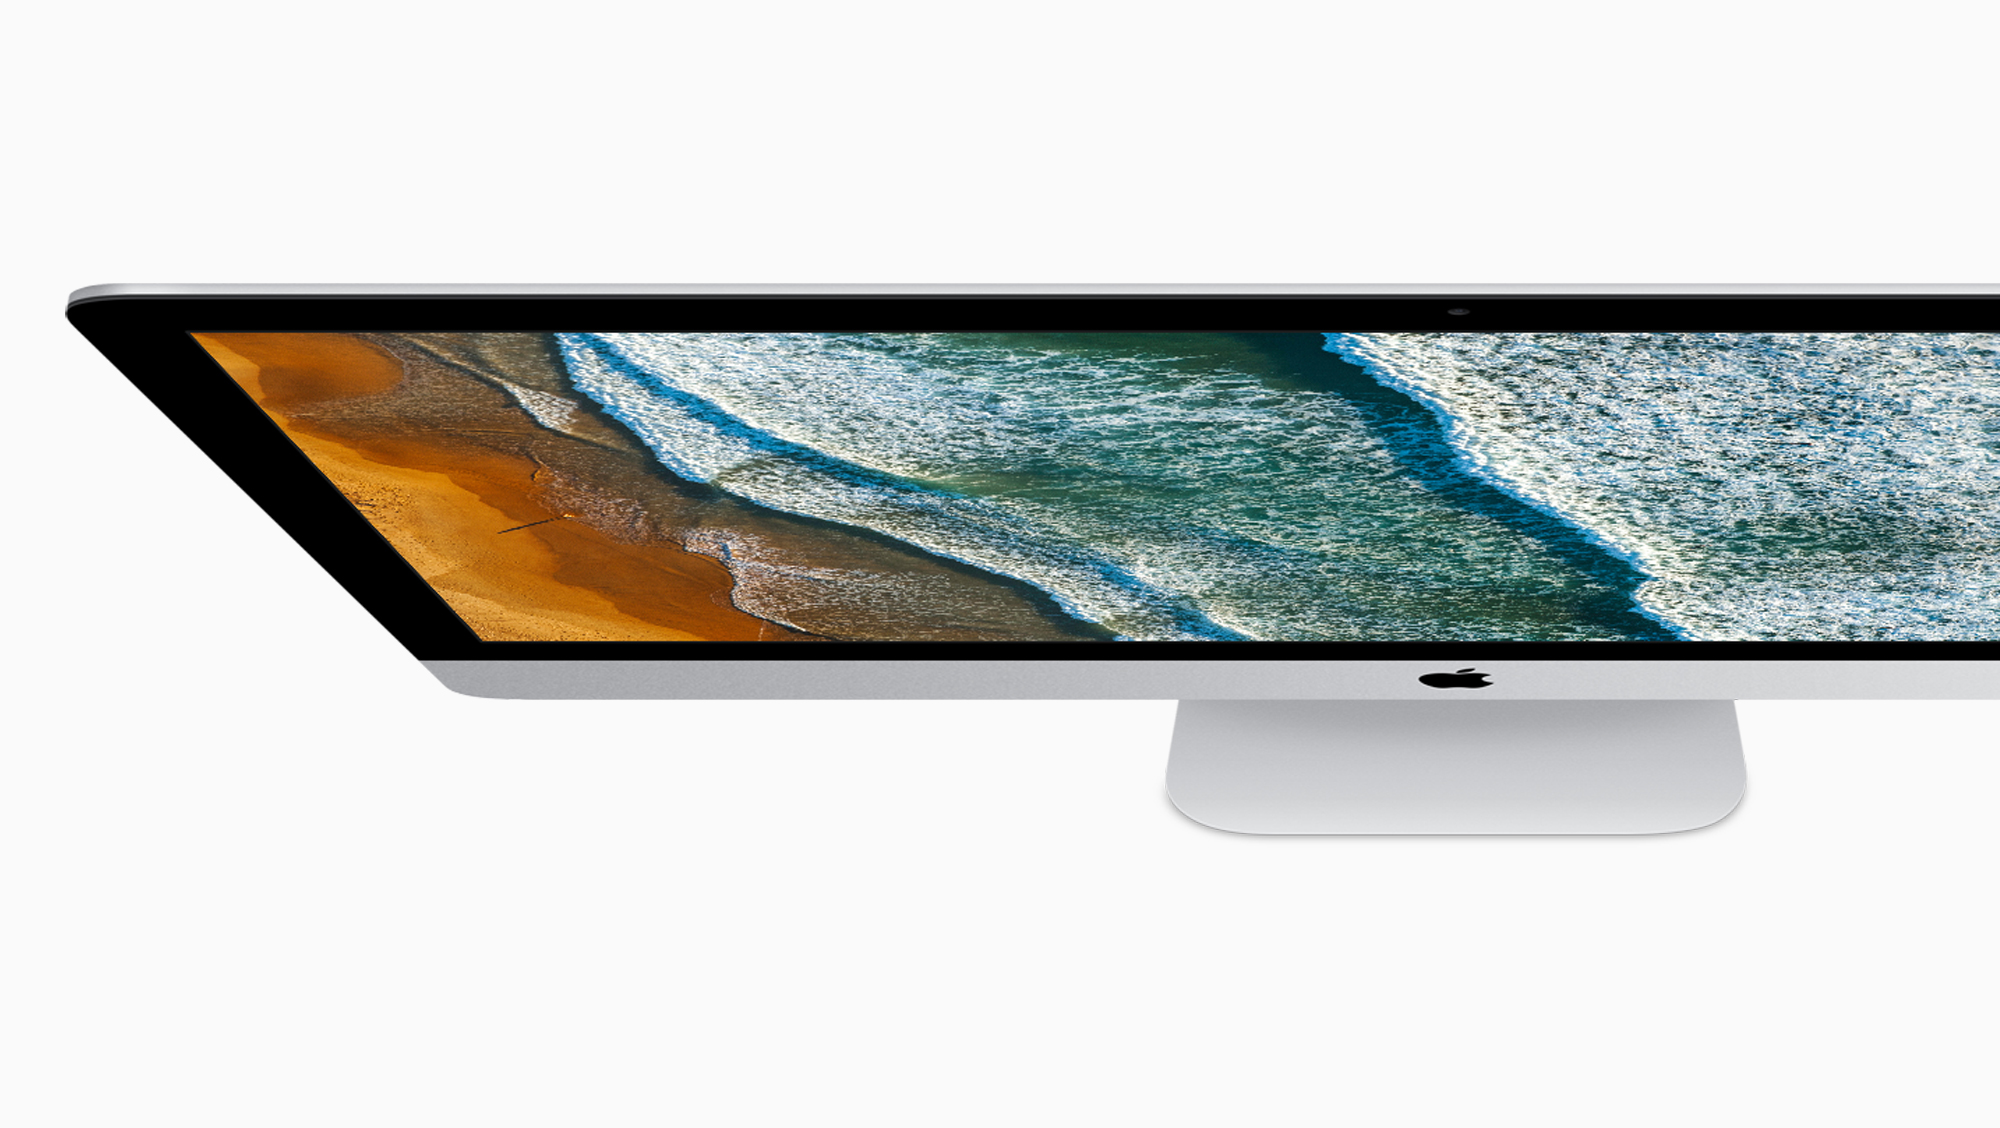 new_2017_imac_top_down.jpg